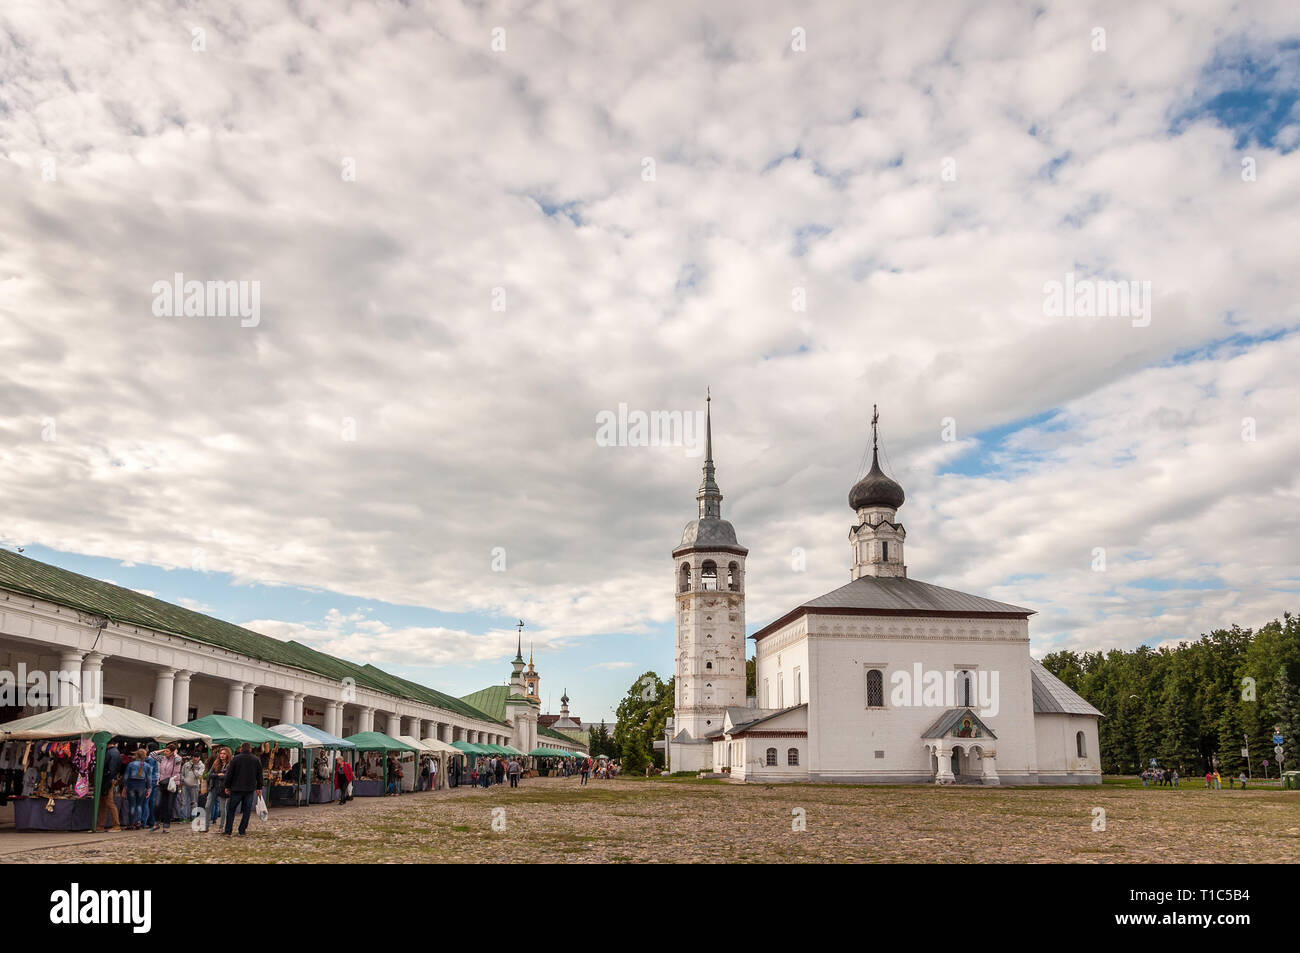 Panorama of Church of the Resurrection in Suzdal - Stock Image